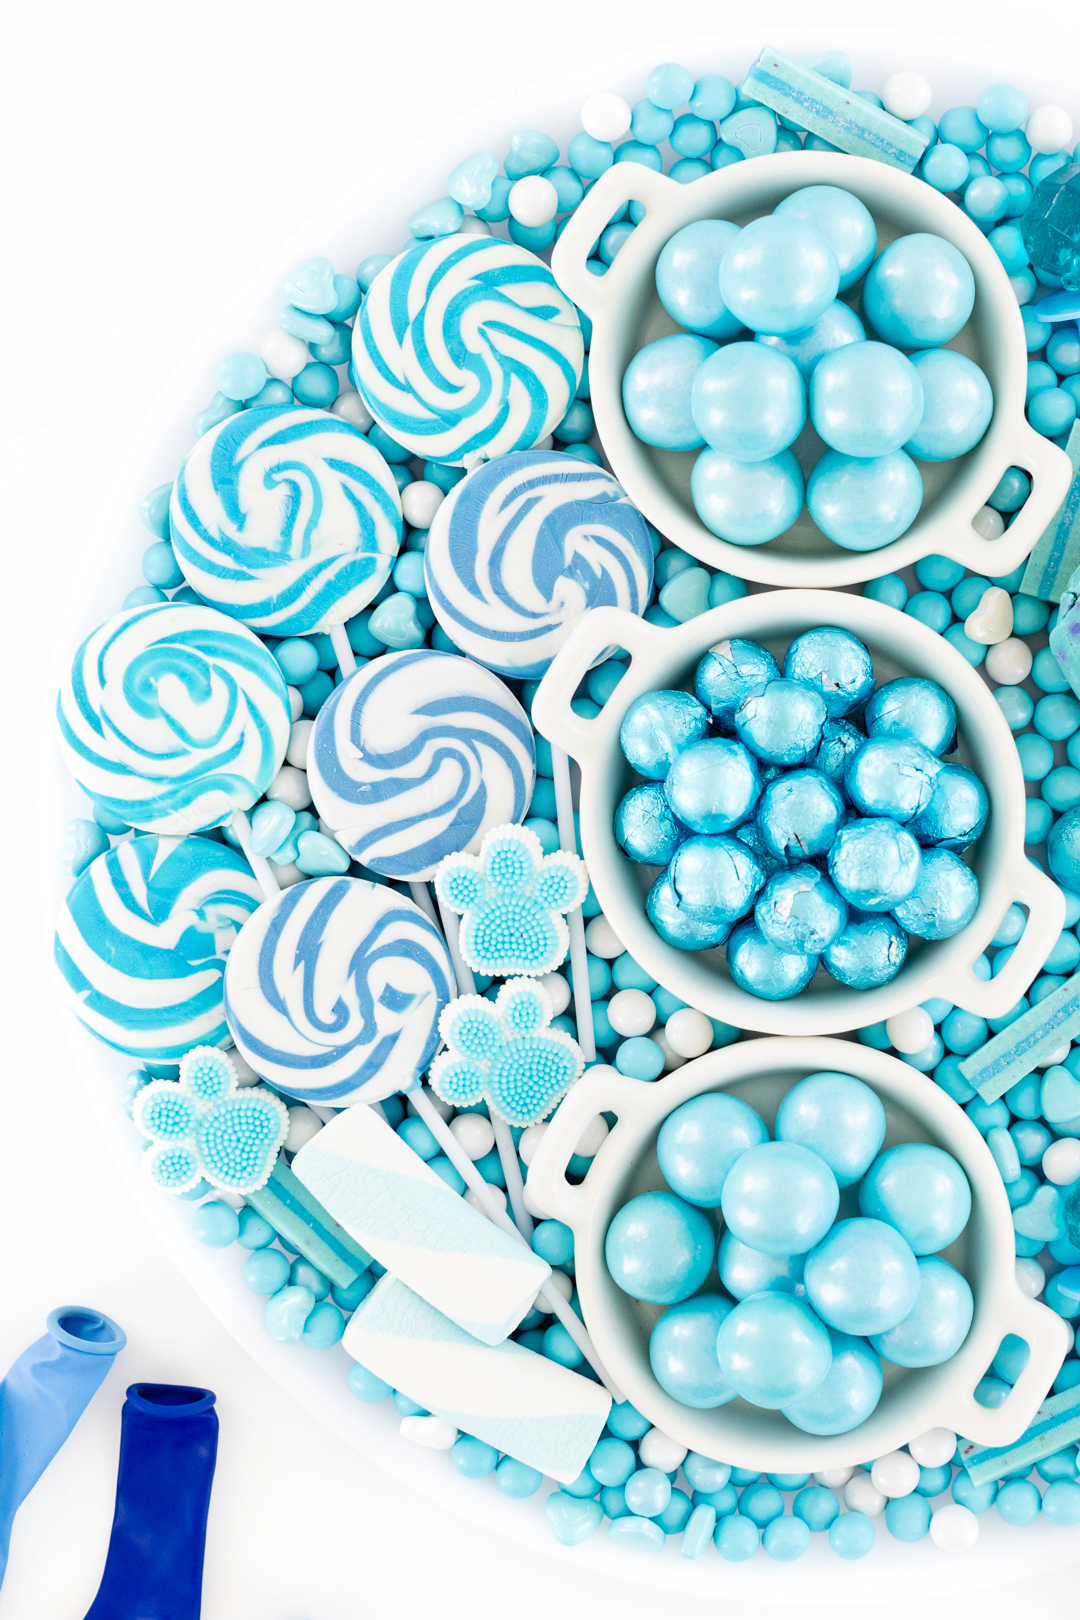 candy board with swirl lollipops in various shades of blue